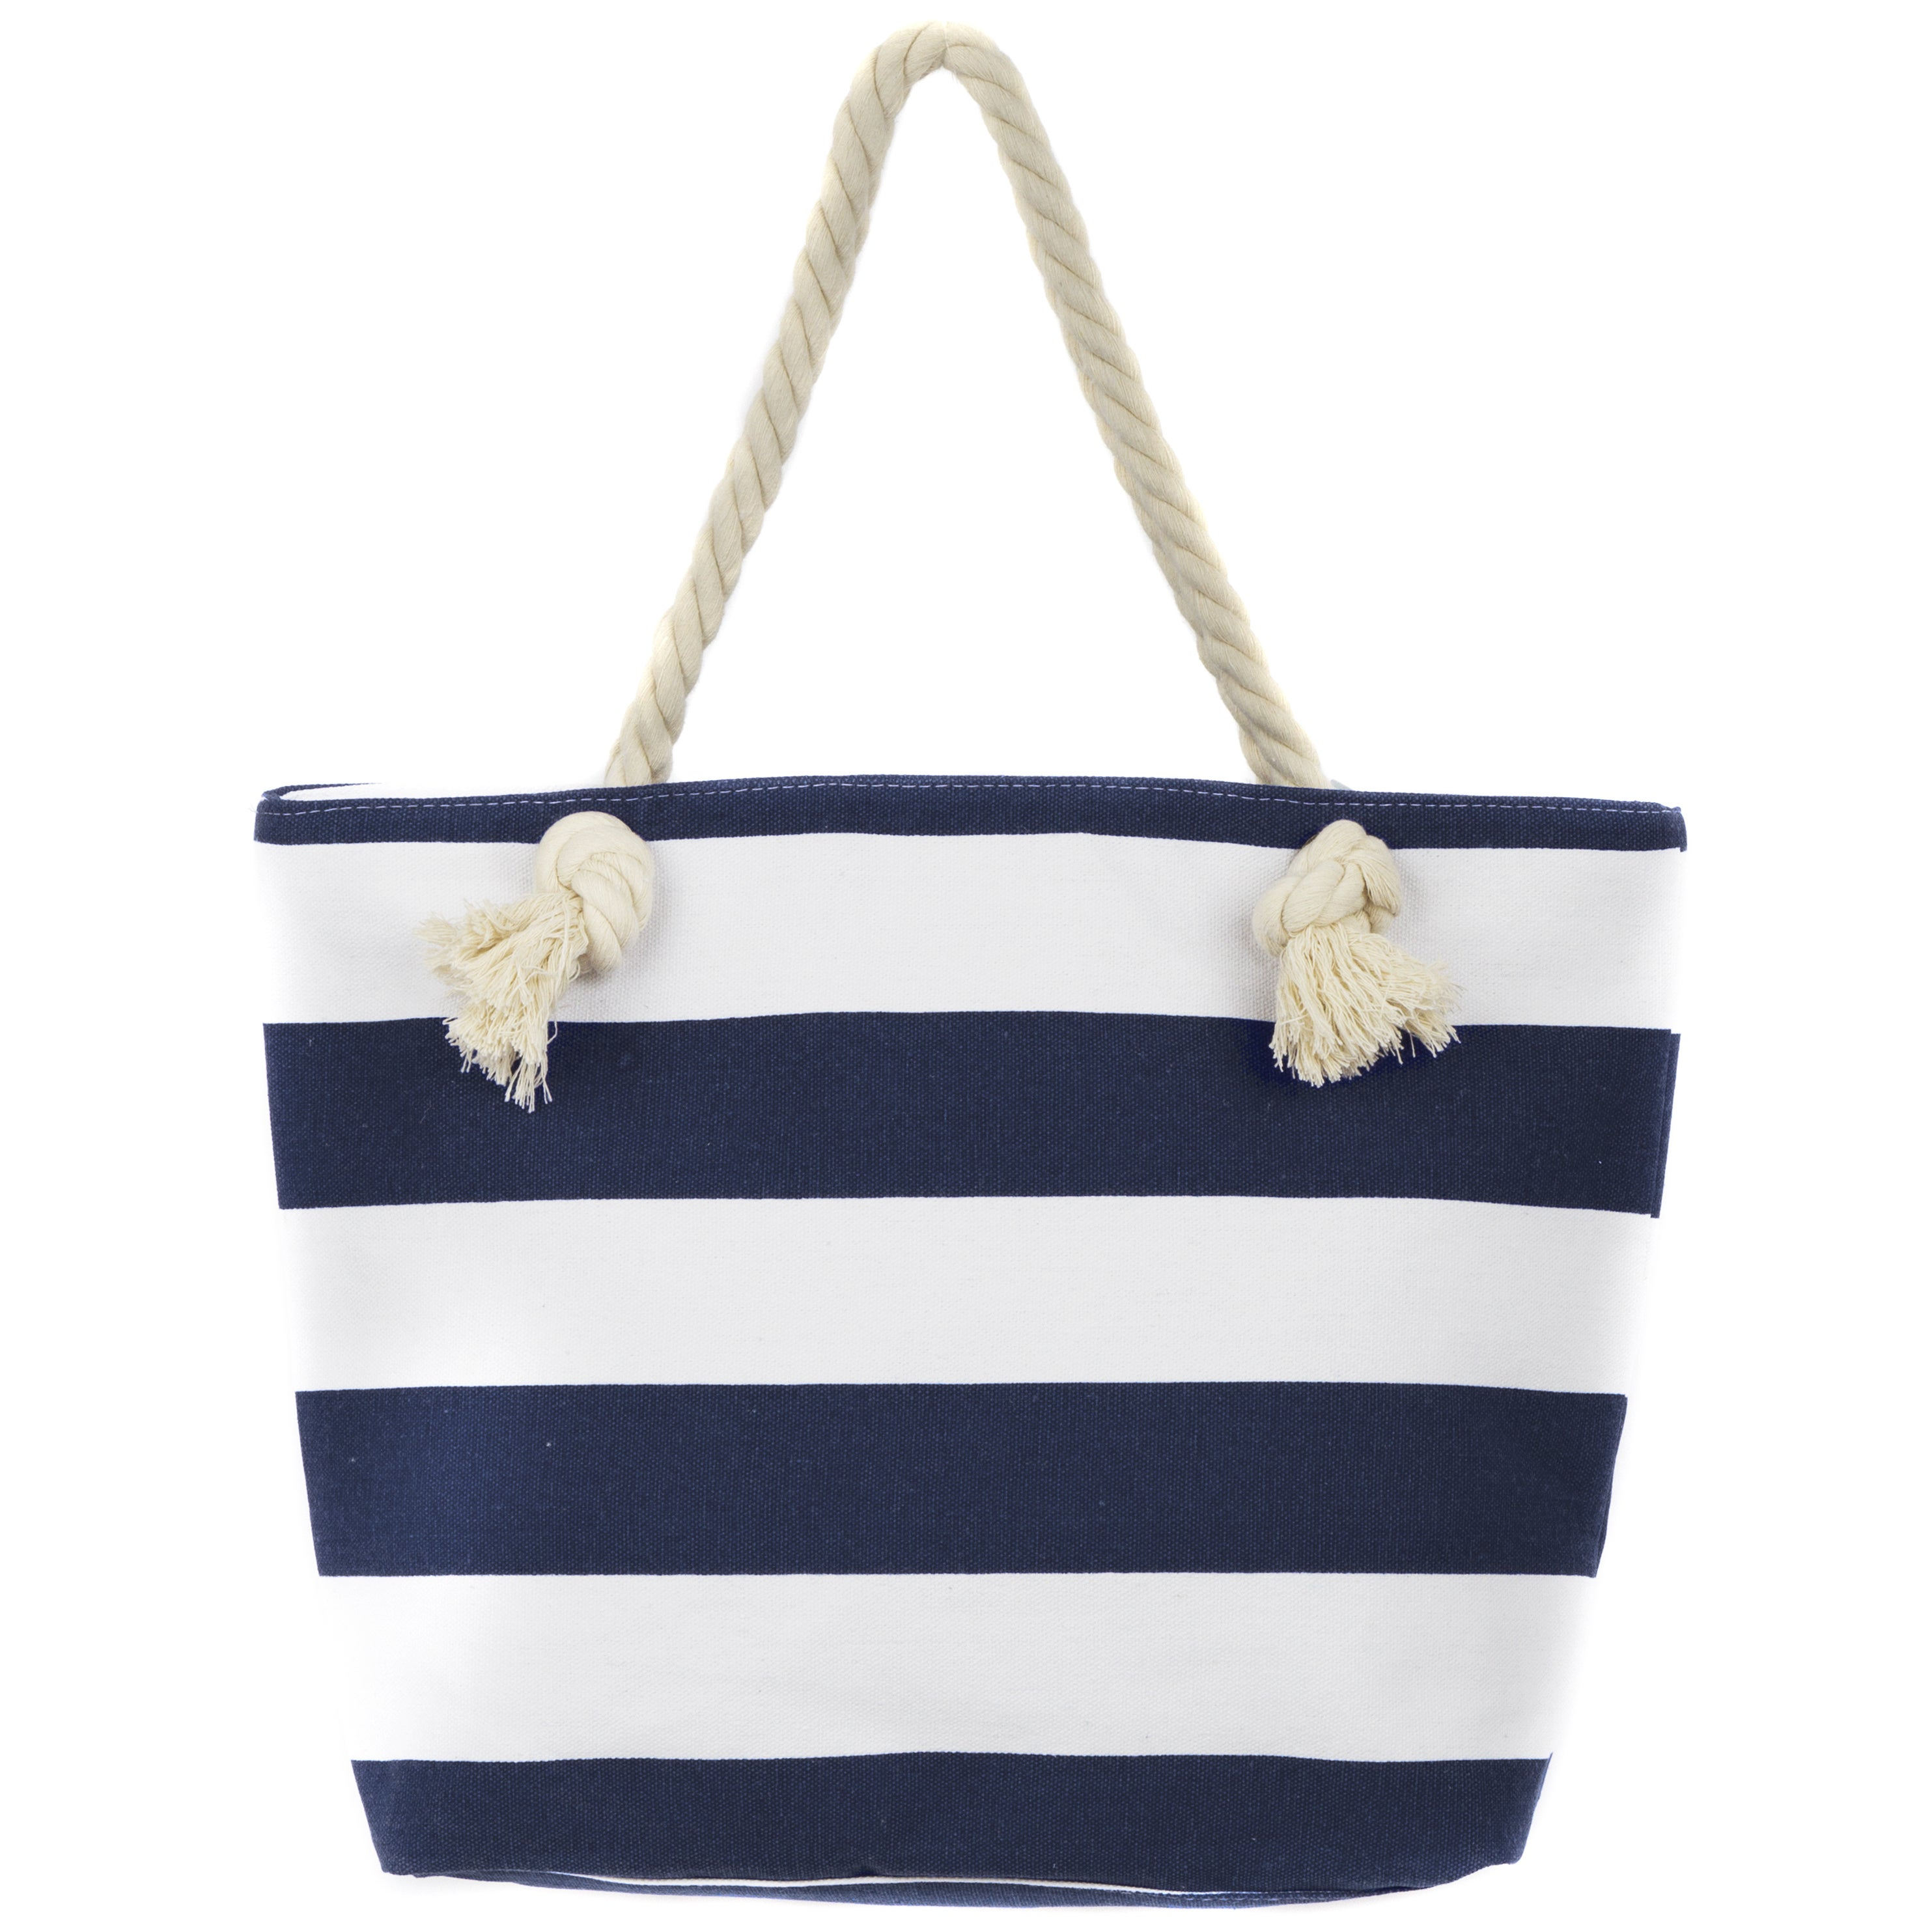 53947171756 Shop Leisureland Rope Handle Stripe Canvas Beach Tote Bag - Free Shipping  On Orders Over  45 - Overstock - 12205931